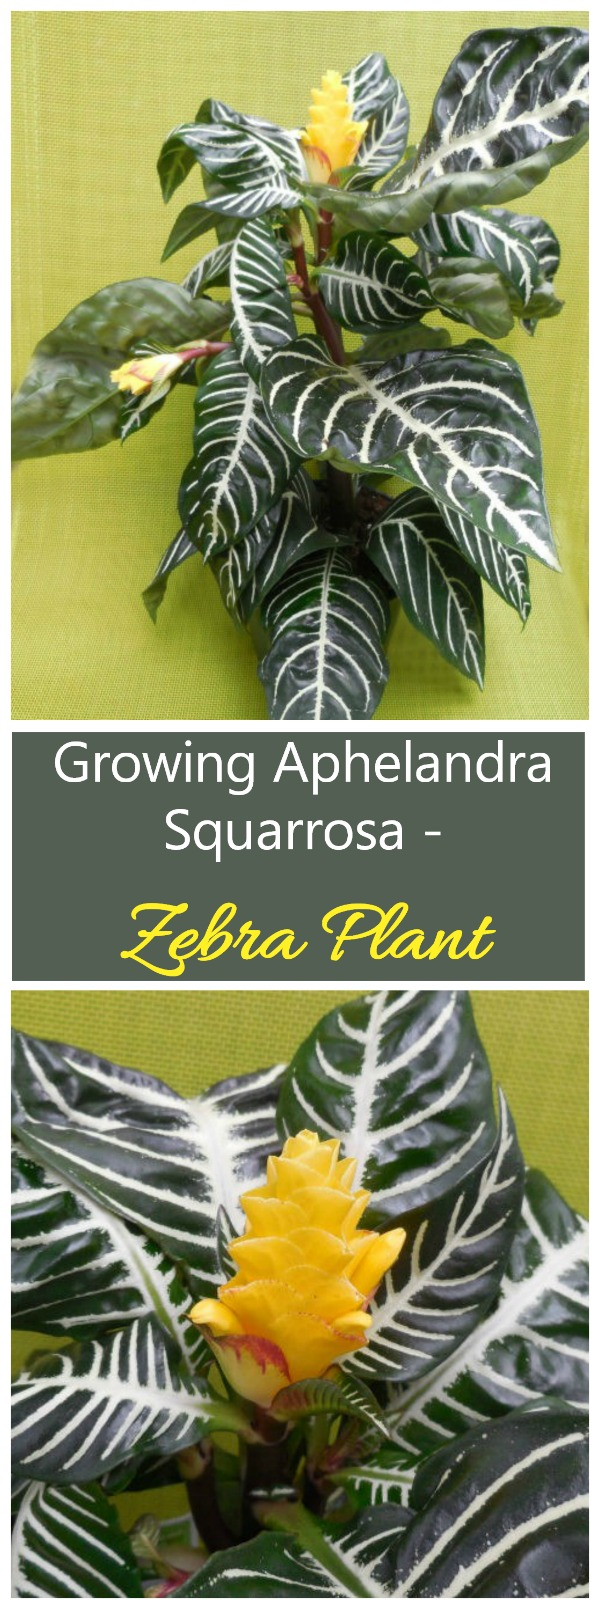 Aphelandra Squarrosa is also known as zebra plant. It is easy to see why when you look at the gorgeous striped leaves. #zebraplant #aphelandrasquarrosa